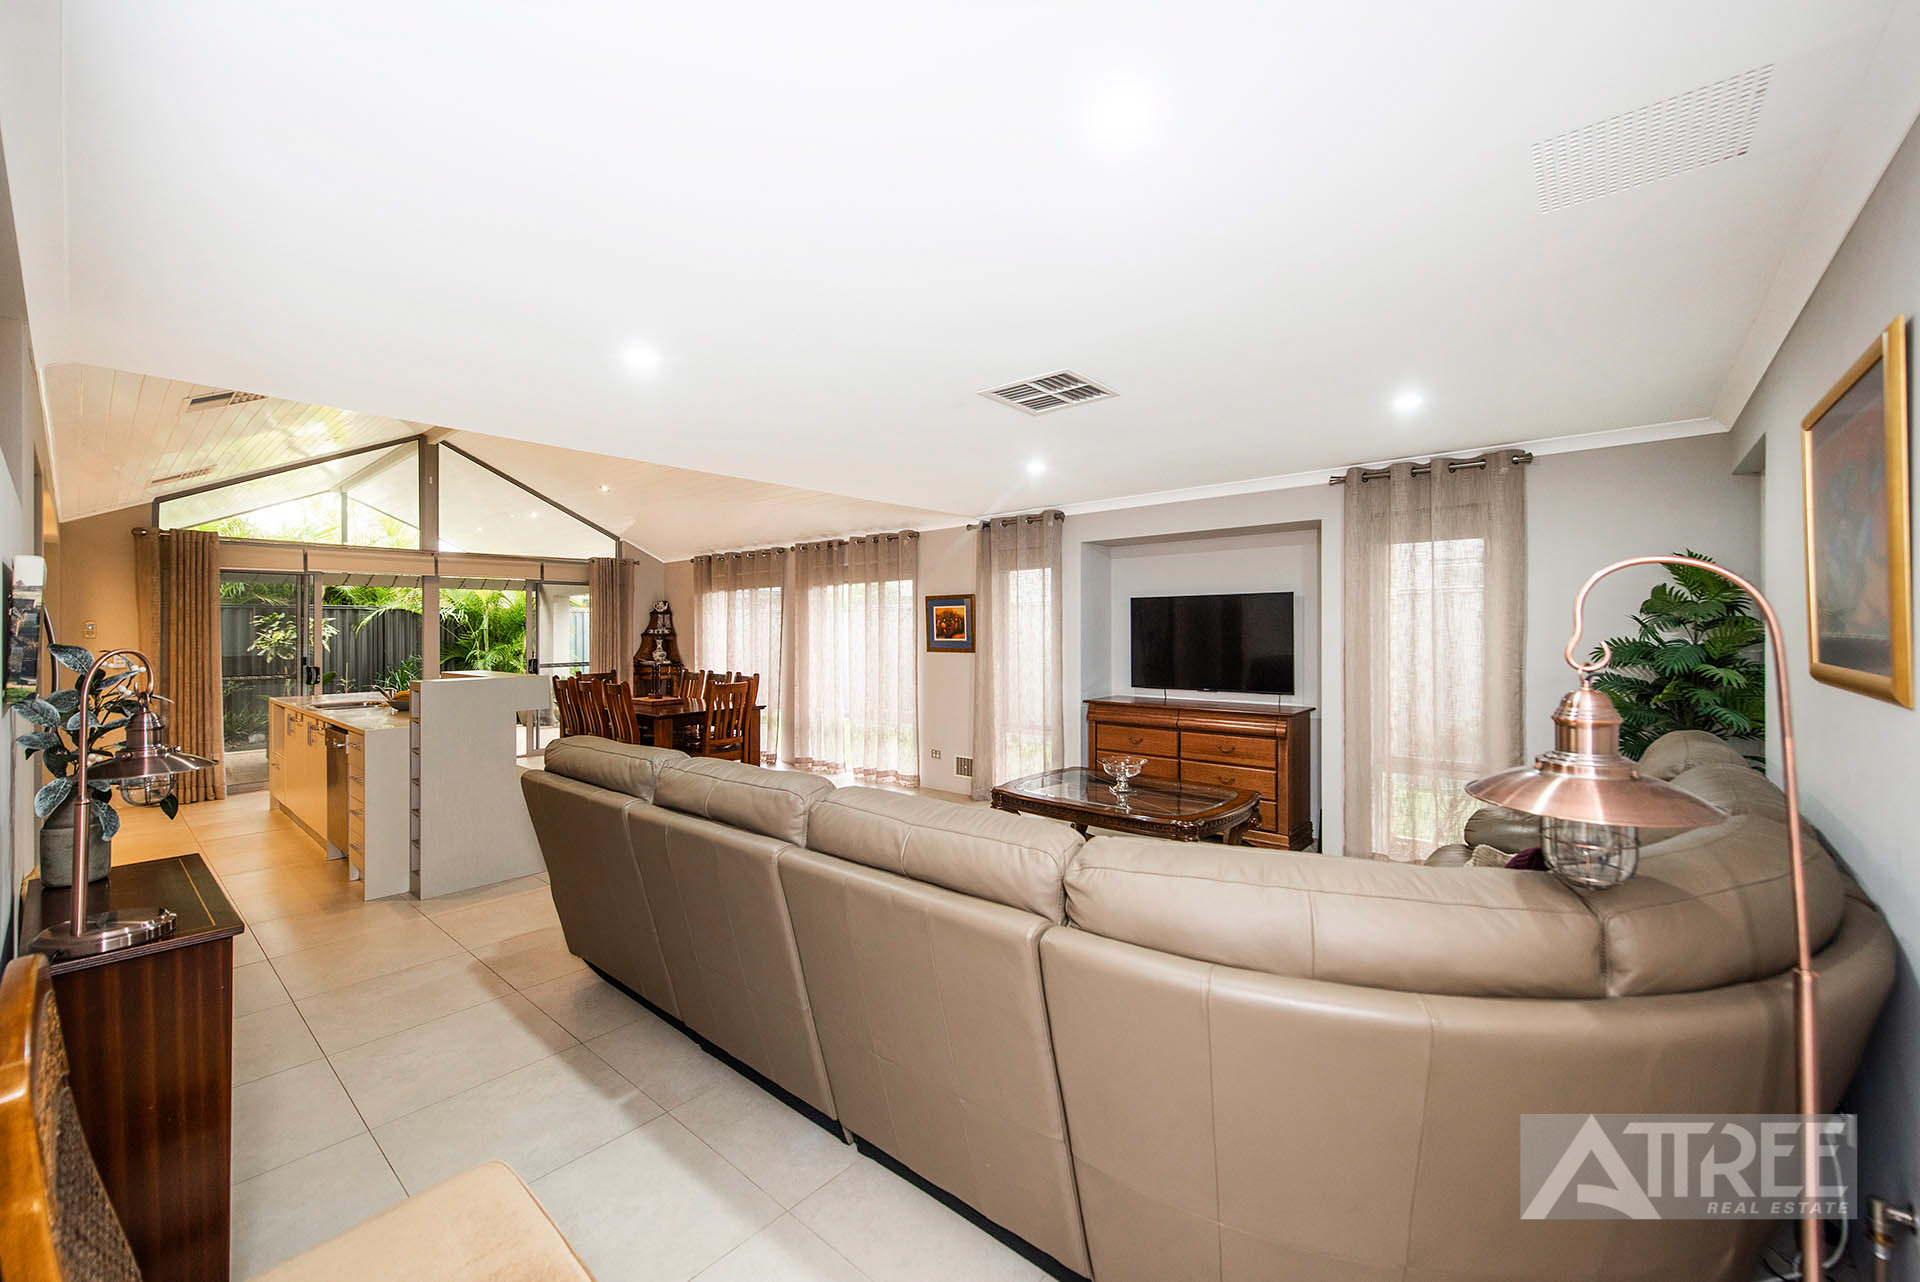 Property for sale in HARRISDALE, 30 Lauraine Drive : Attree Real Estate